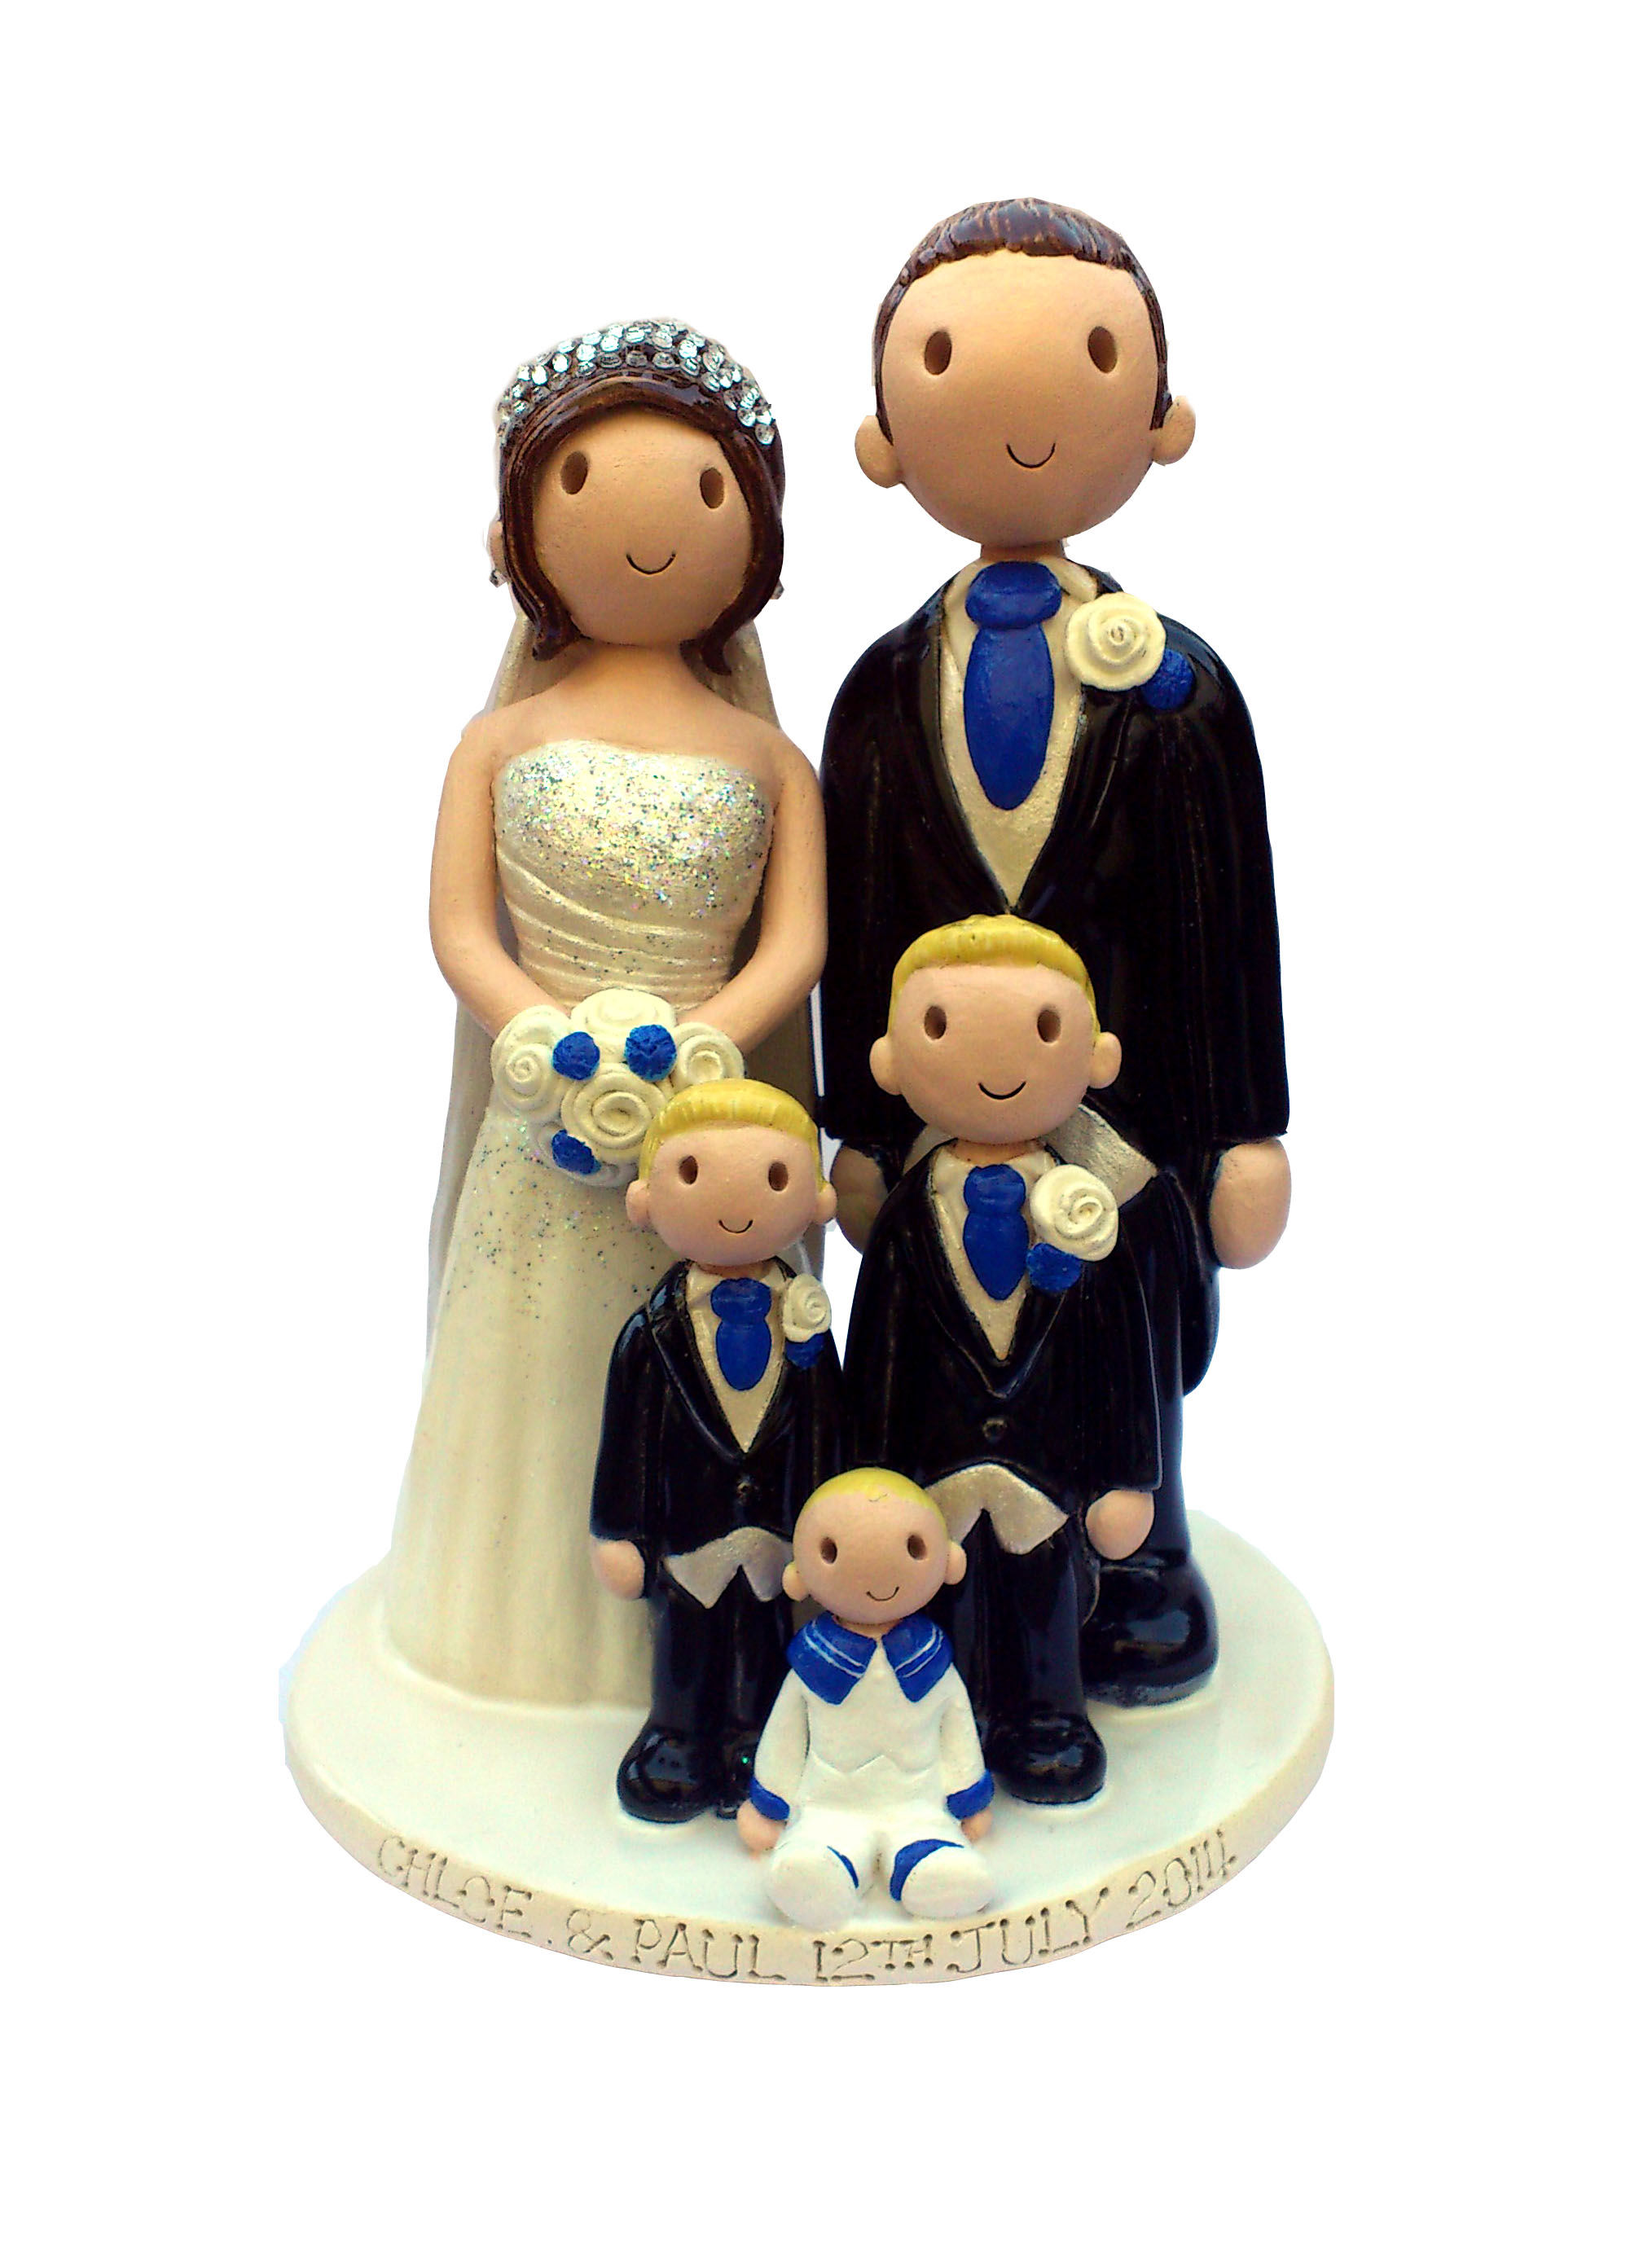 wedding cake toppers personalised uk wedding cake toppers gallery examples of toppers we 26573